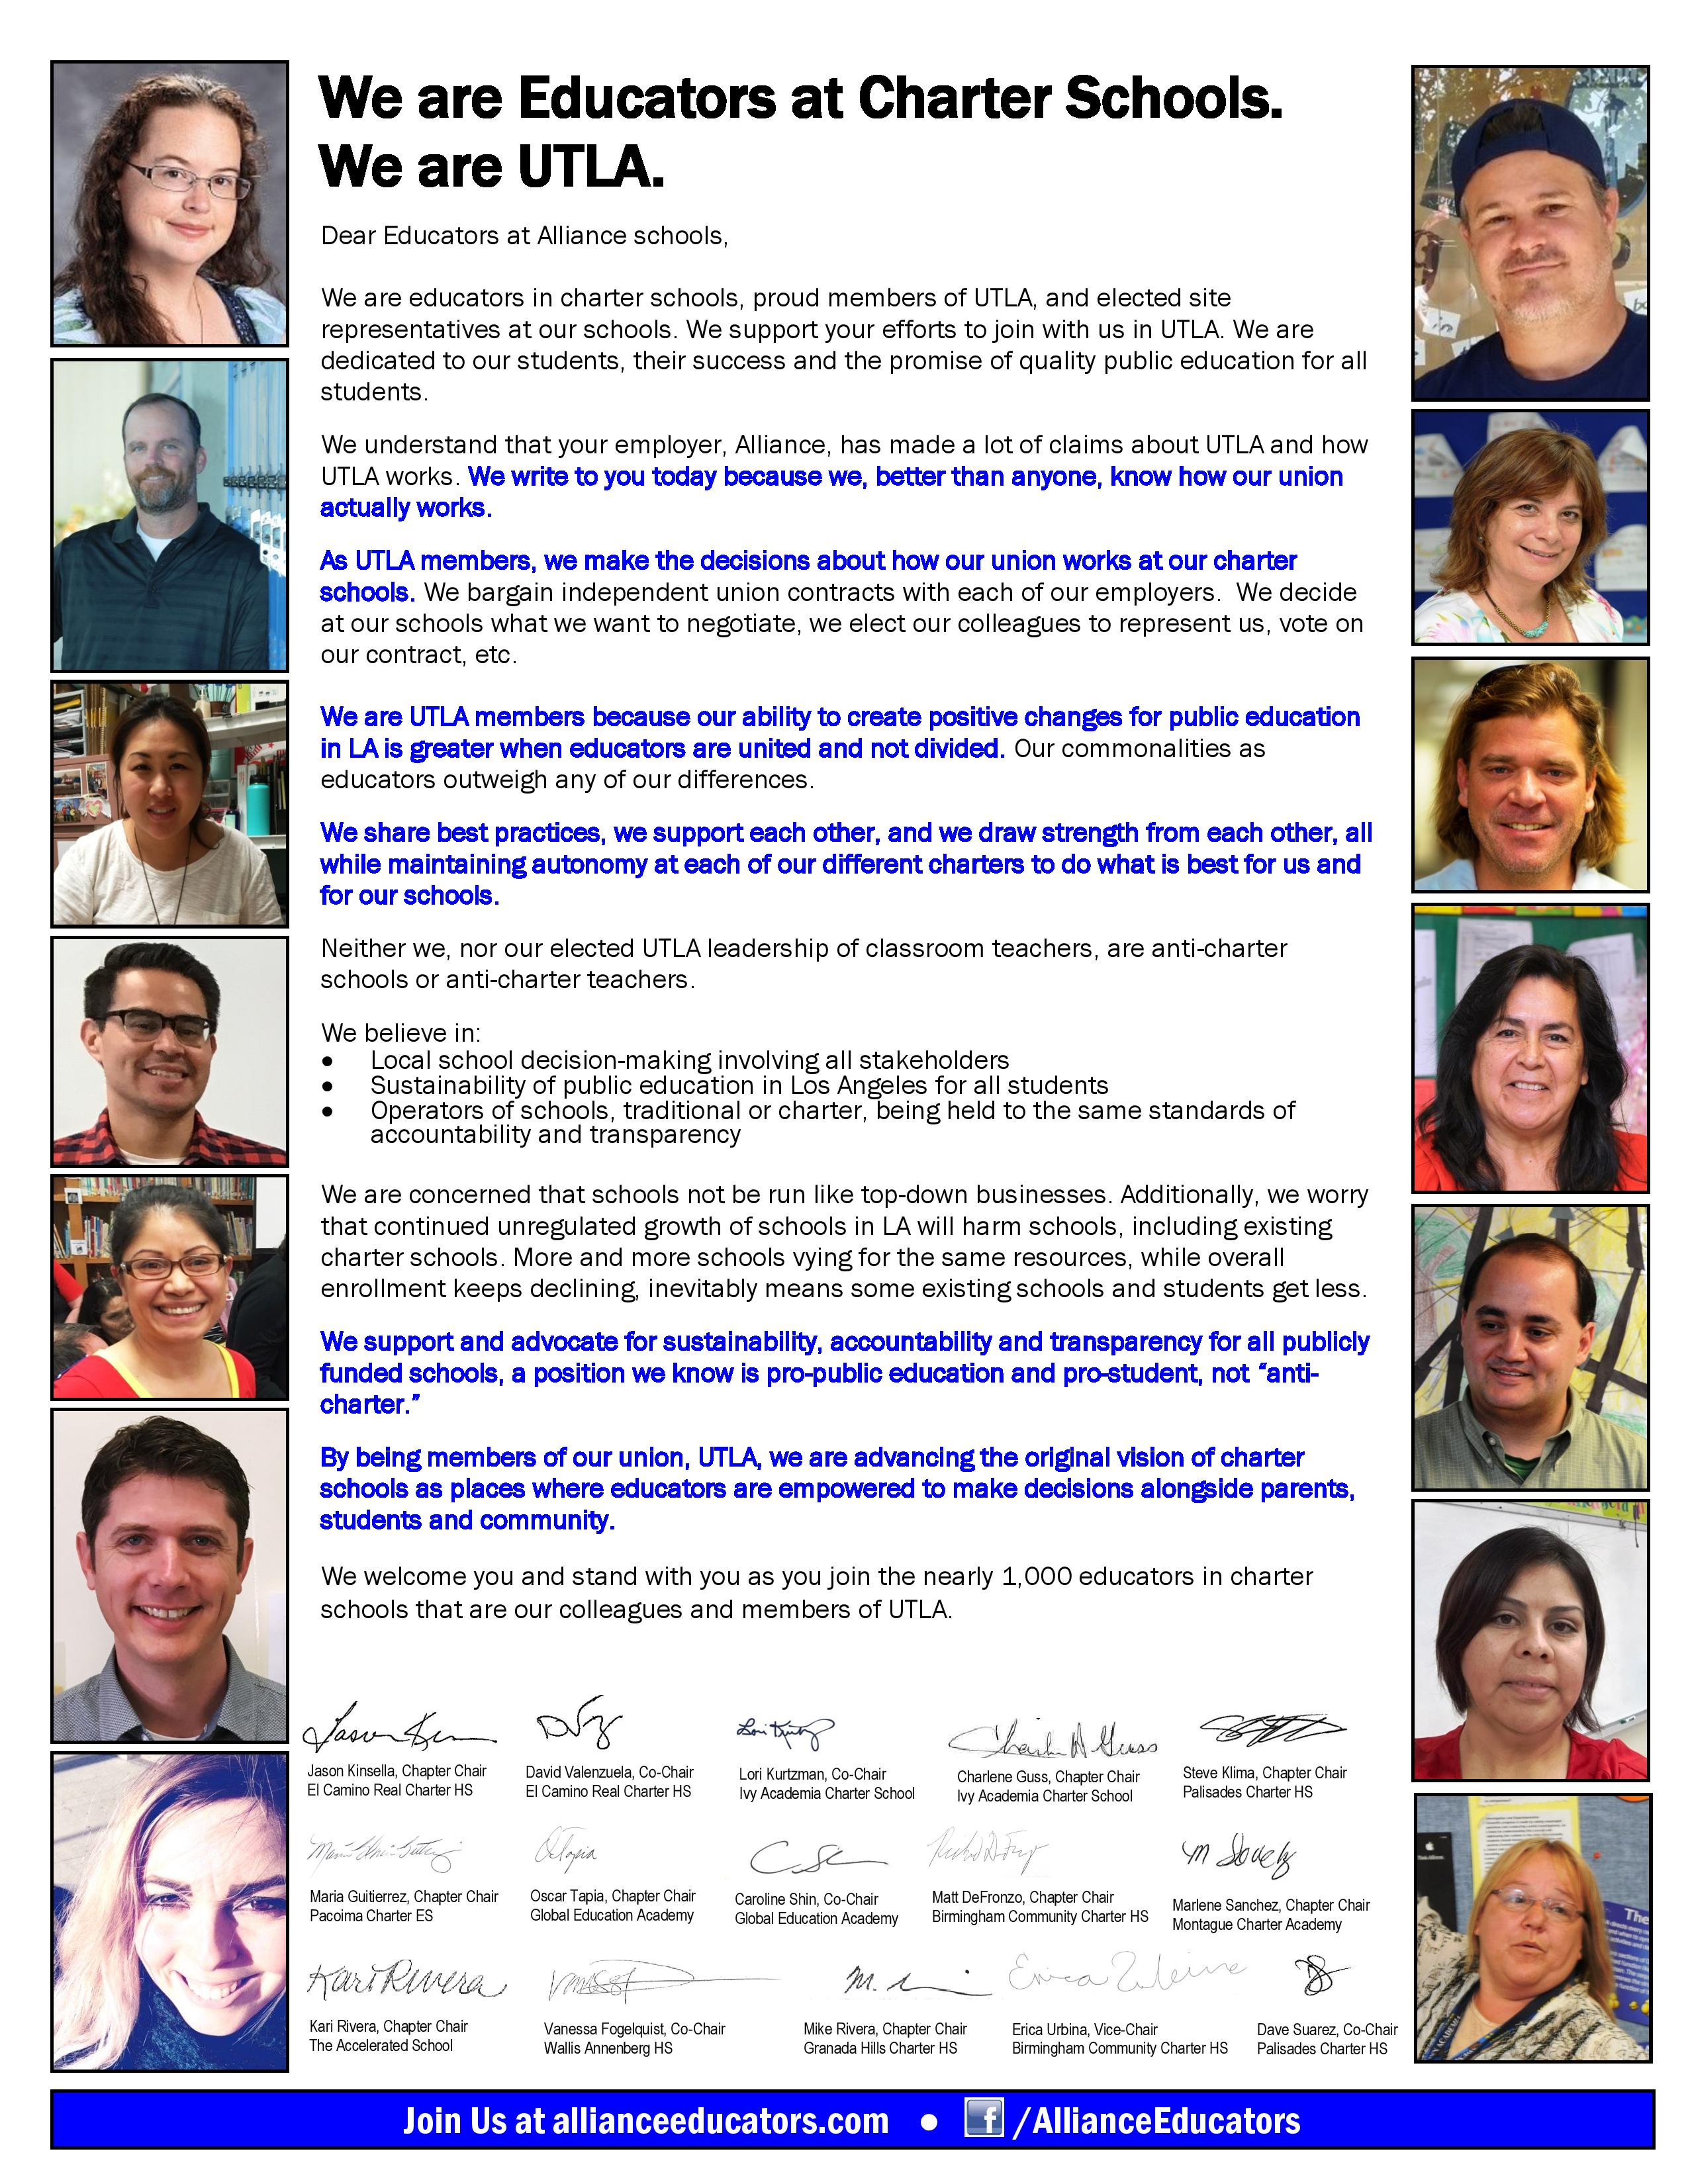 UTLA Charter Chapter Chairs Support Letter to Alliance Educators